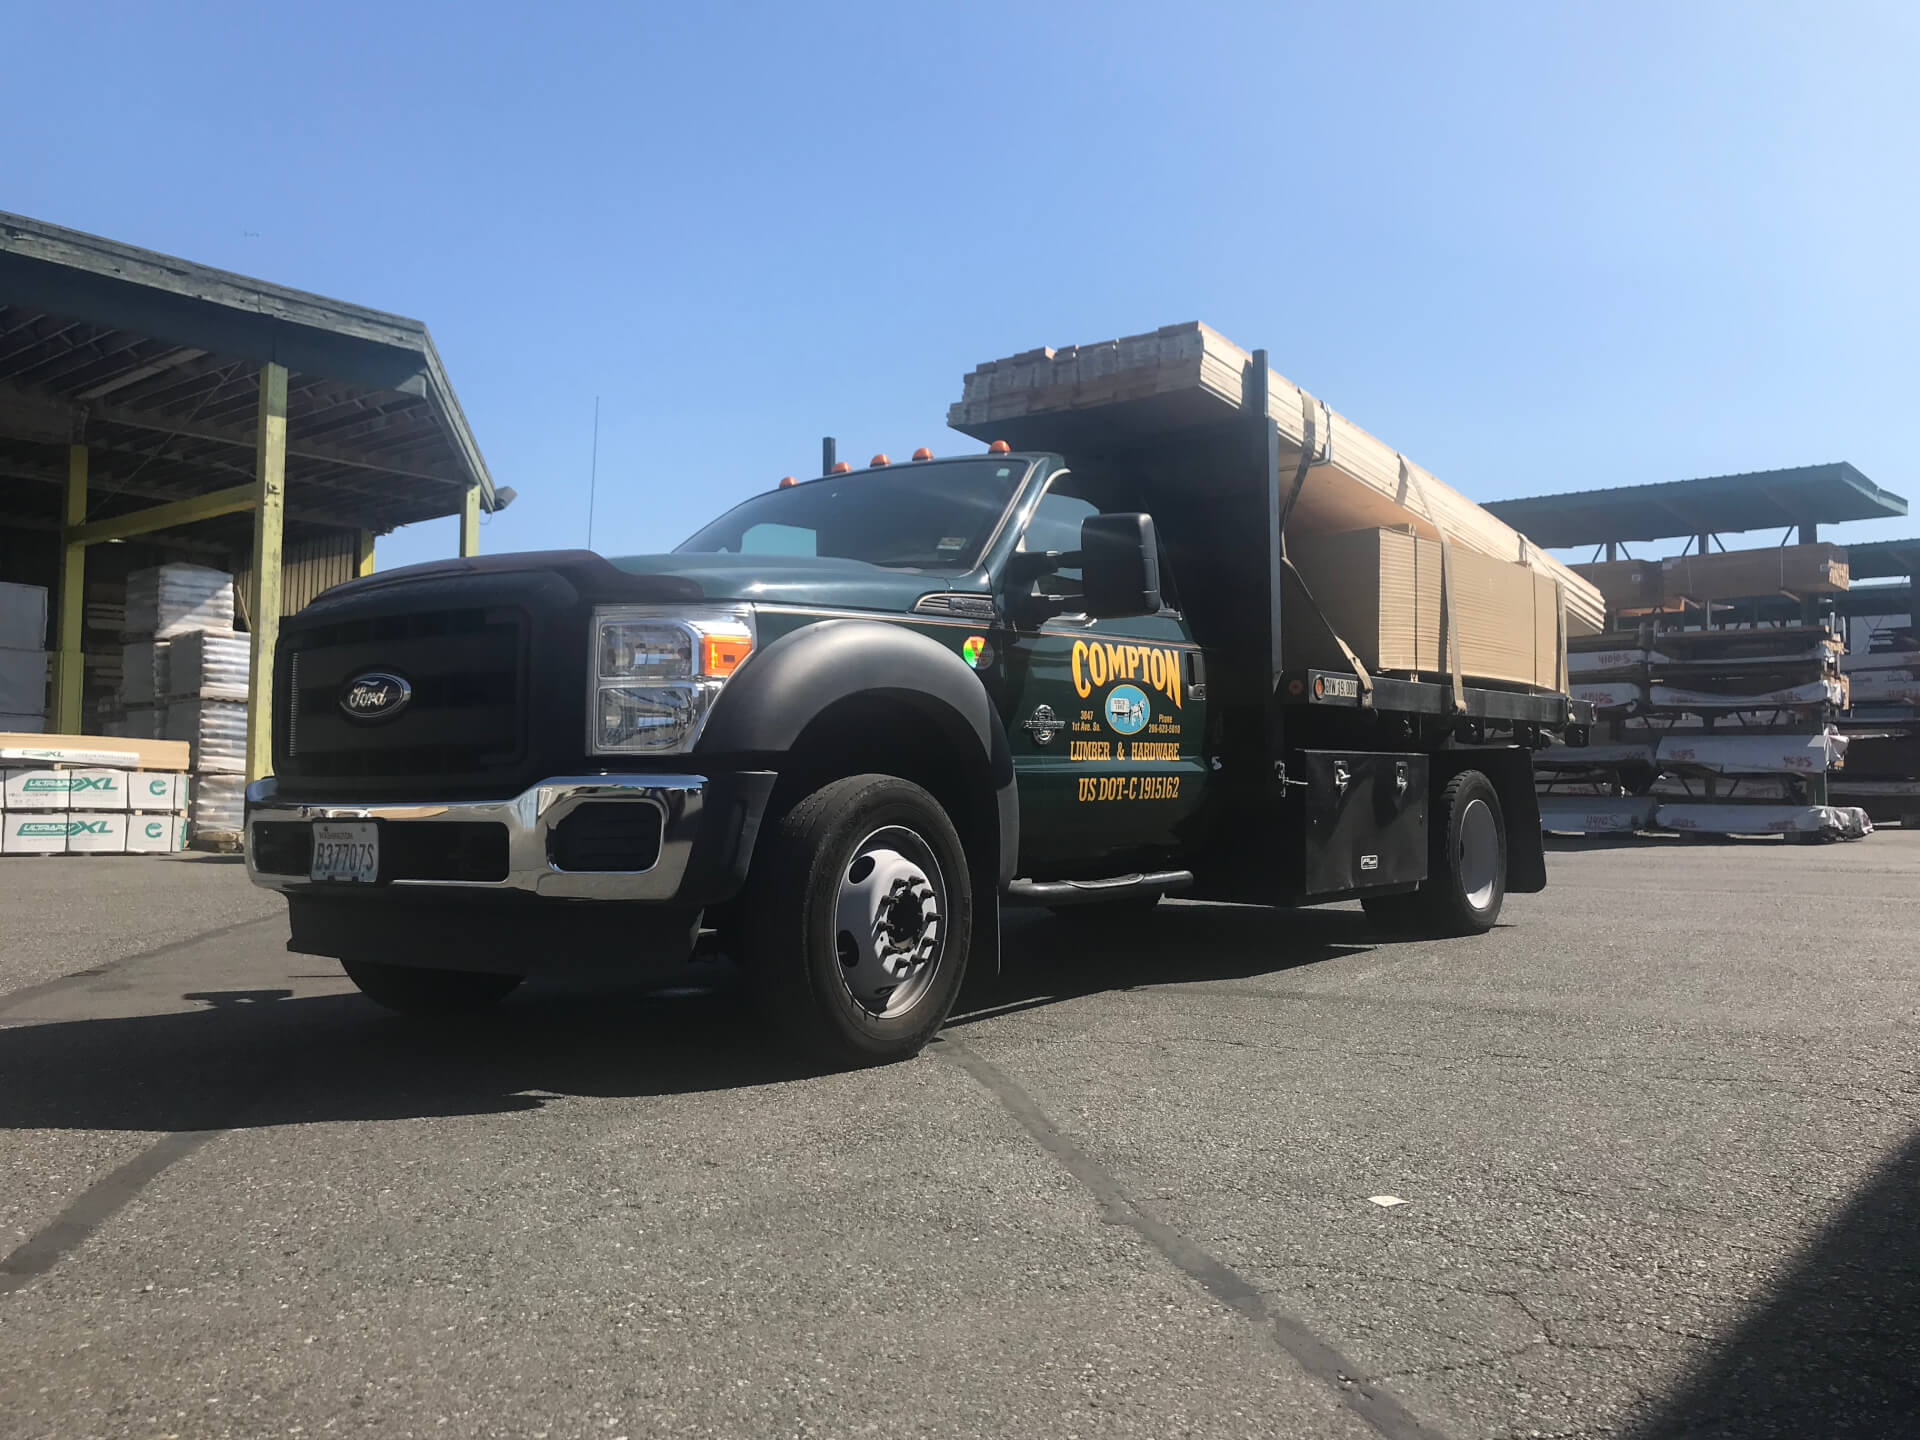 Compton Lumber Delivery Truck